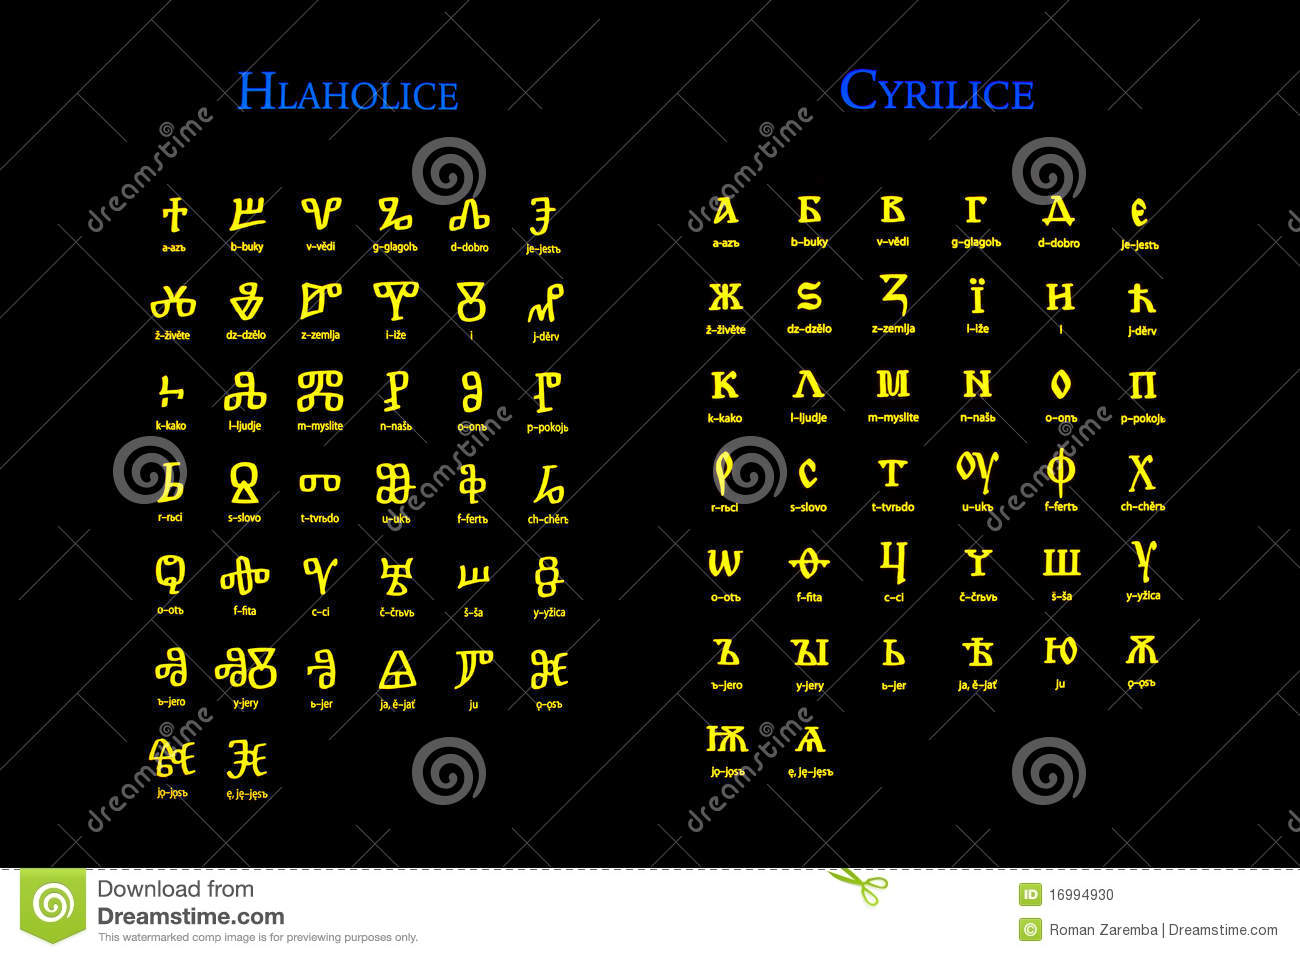 Two Old Church Slavonic alphabets - Glagolitic and Cyrillic.